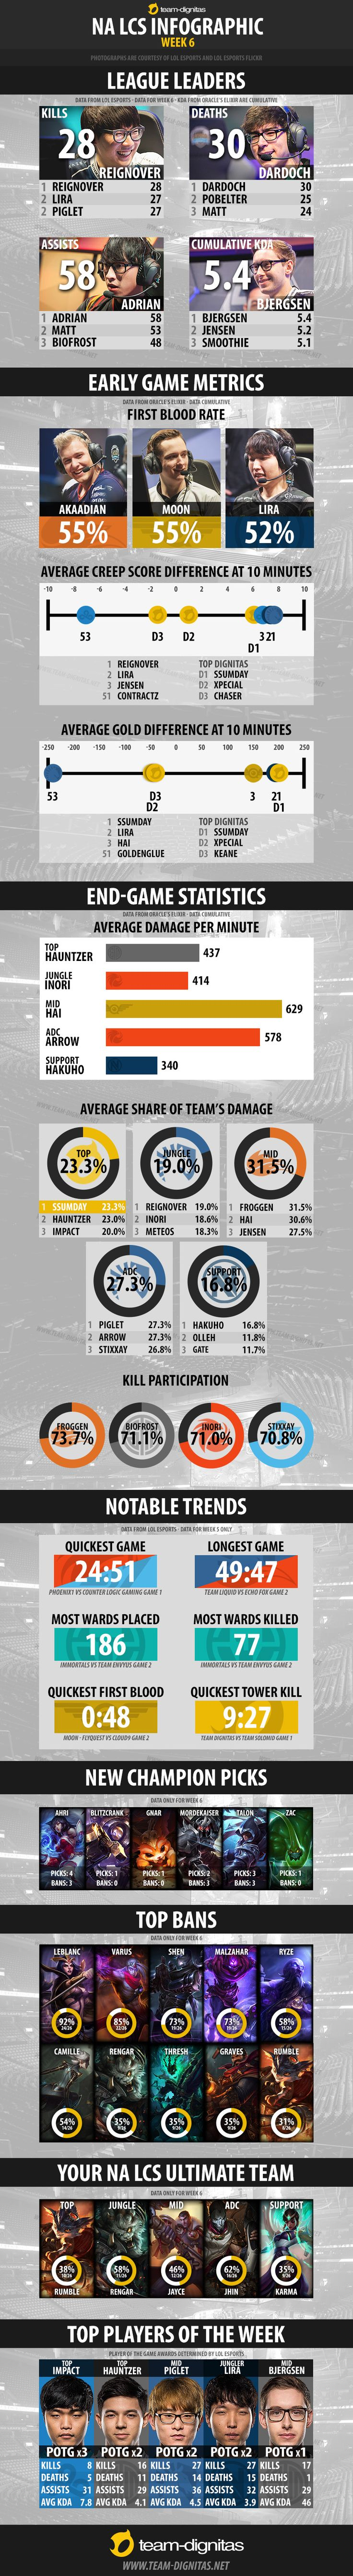 2017 NA LCS Spring Split Infographic - Week 6 http://imgur.com/a/j5JZ0 #games #LeagueOfLegends #esports #lol #riot #Worlds #gaming